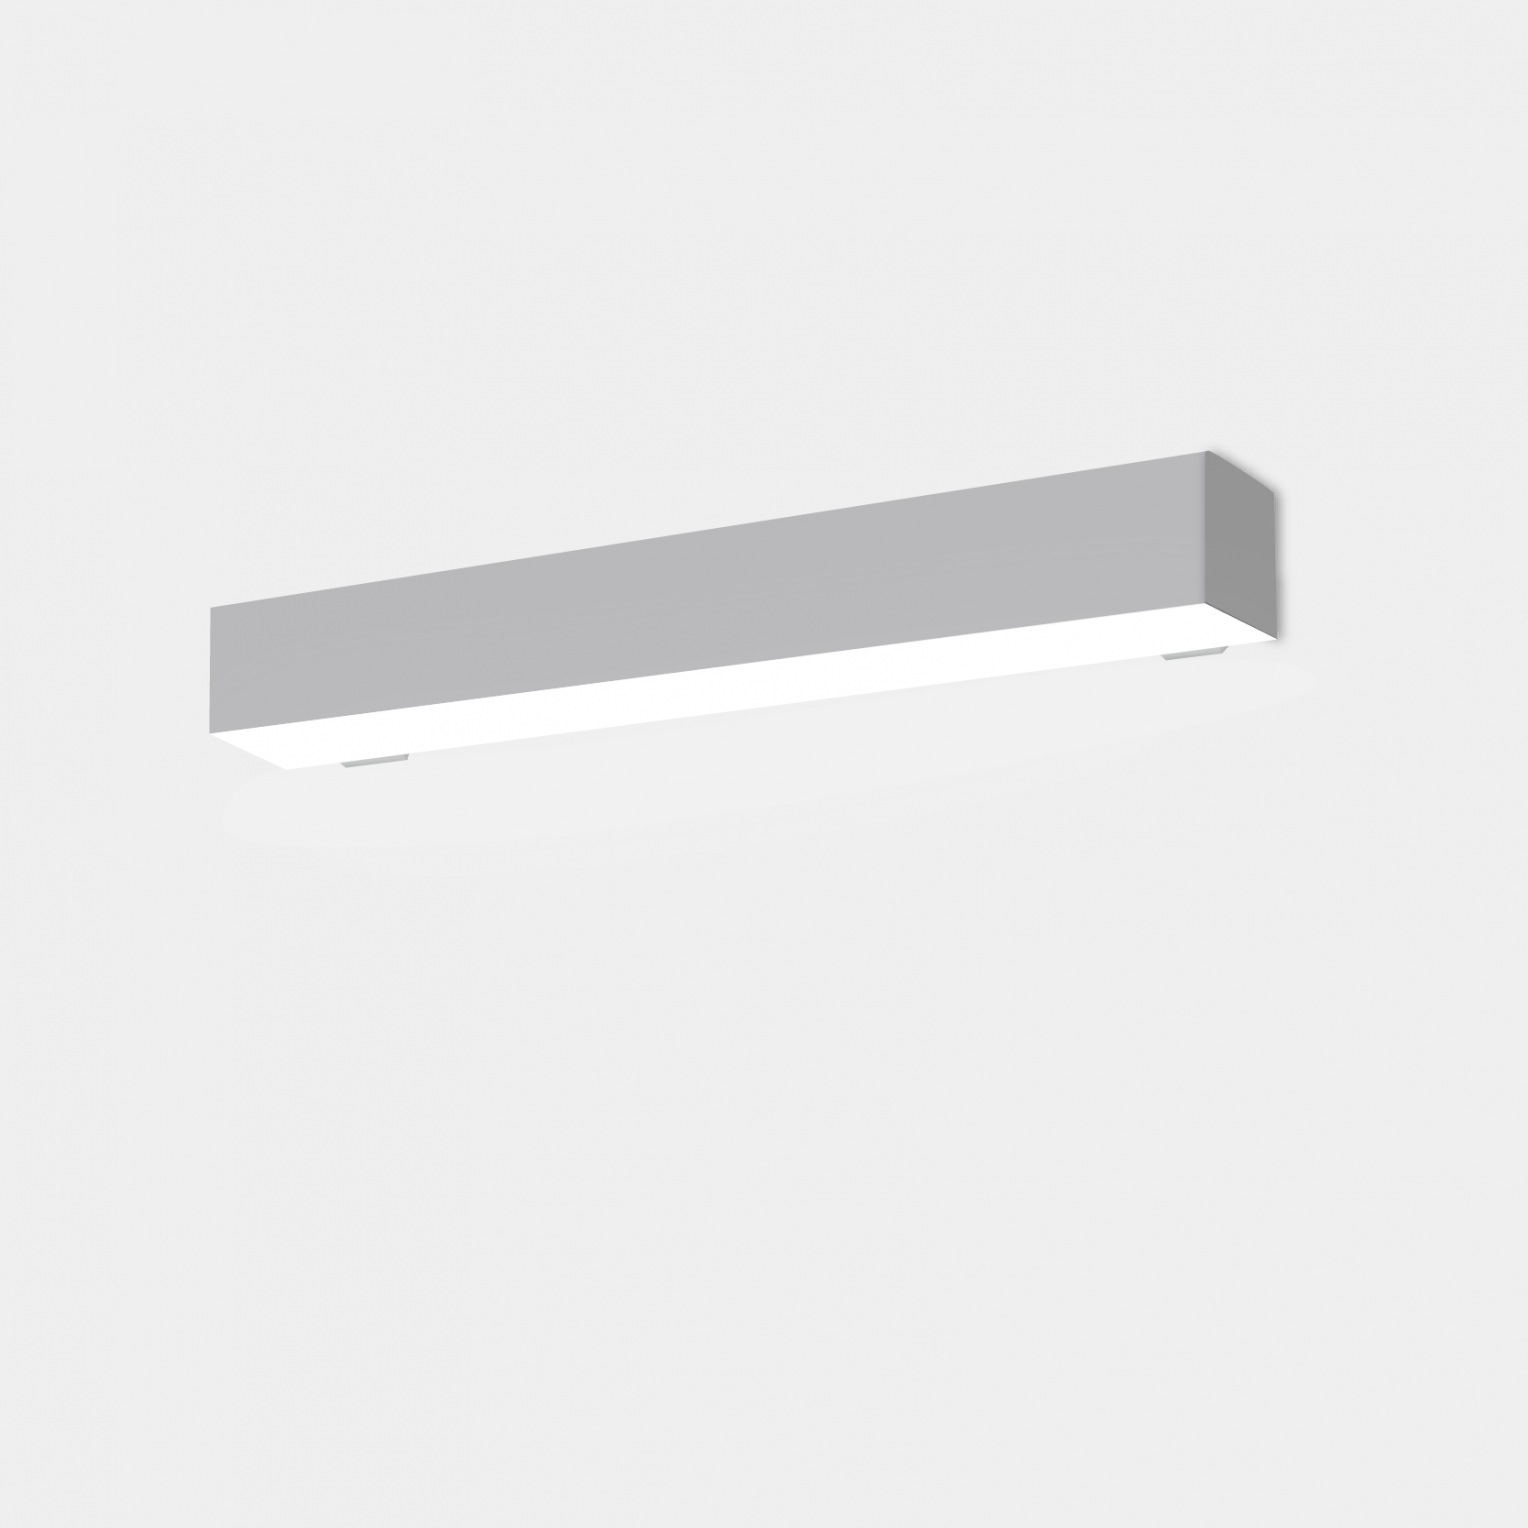 Alcon Lighting 11158-4 Beam 20 Series Architectural LED 4 Foot ... for Wall Foot Light  49jwn